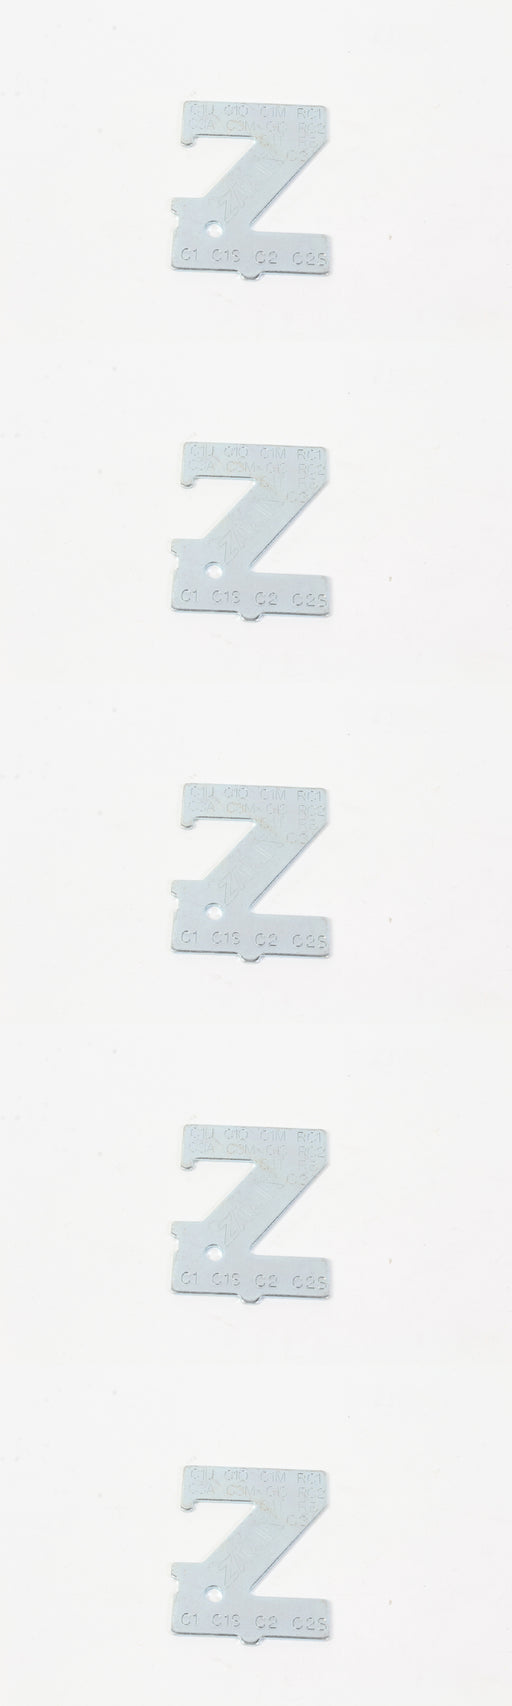 5 Pack Genuine Zama ZT-1 Metering Lever Adjustment Tool OEM